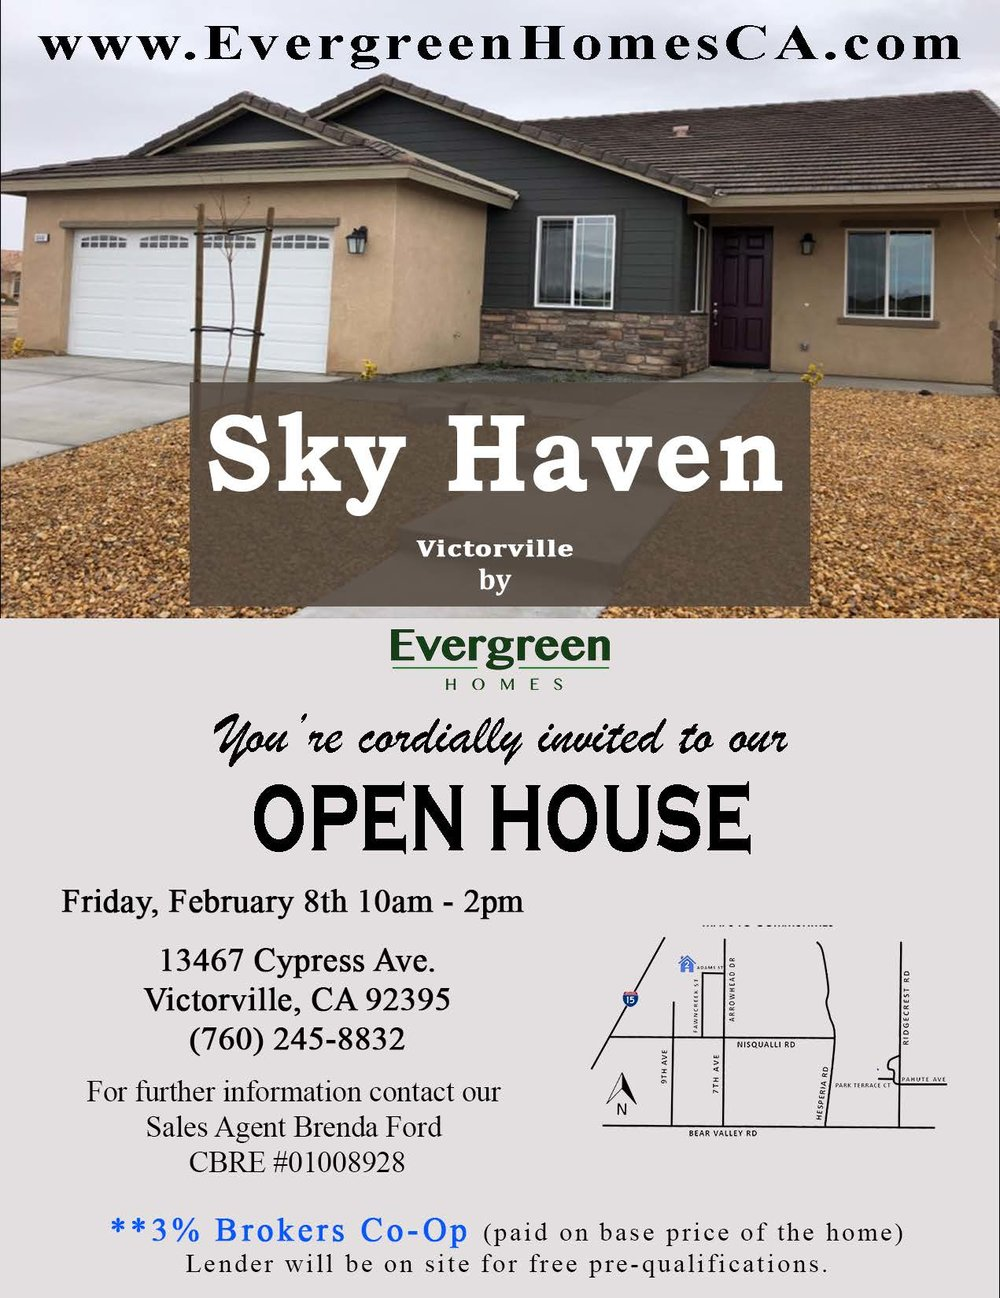 Evergreen Homes-Lot 72 Open House.2.8.19.jpg